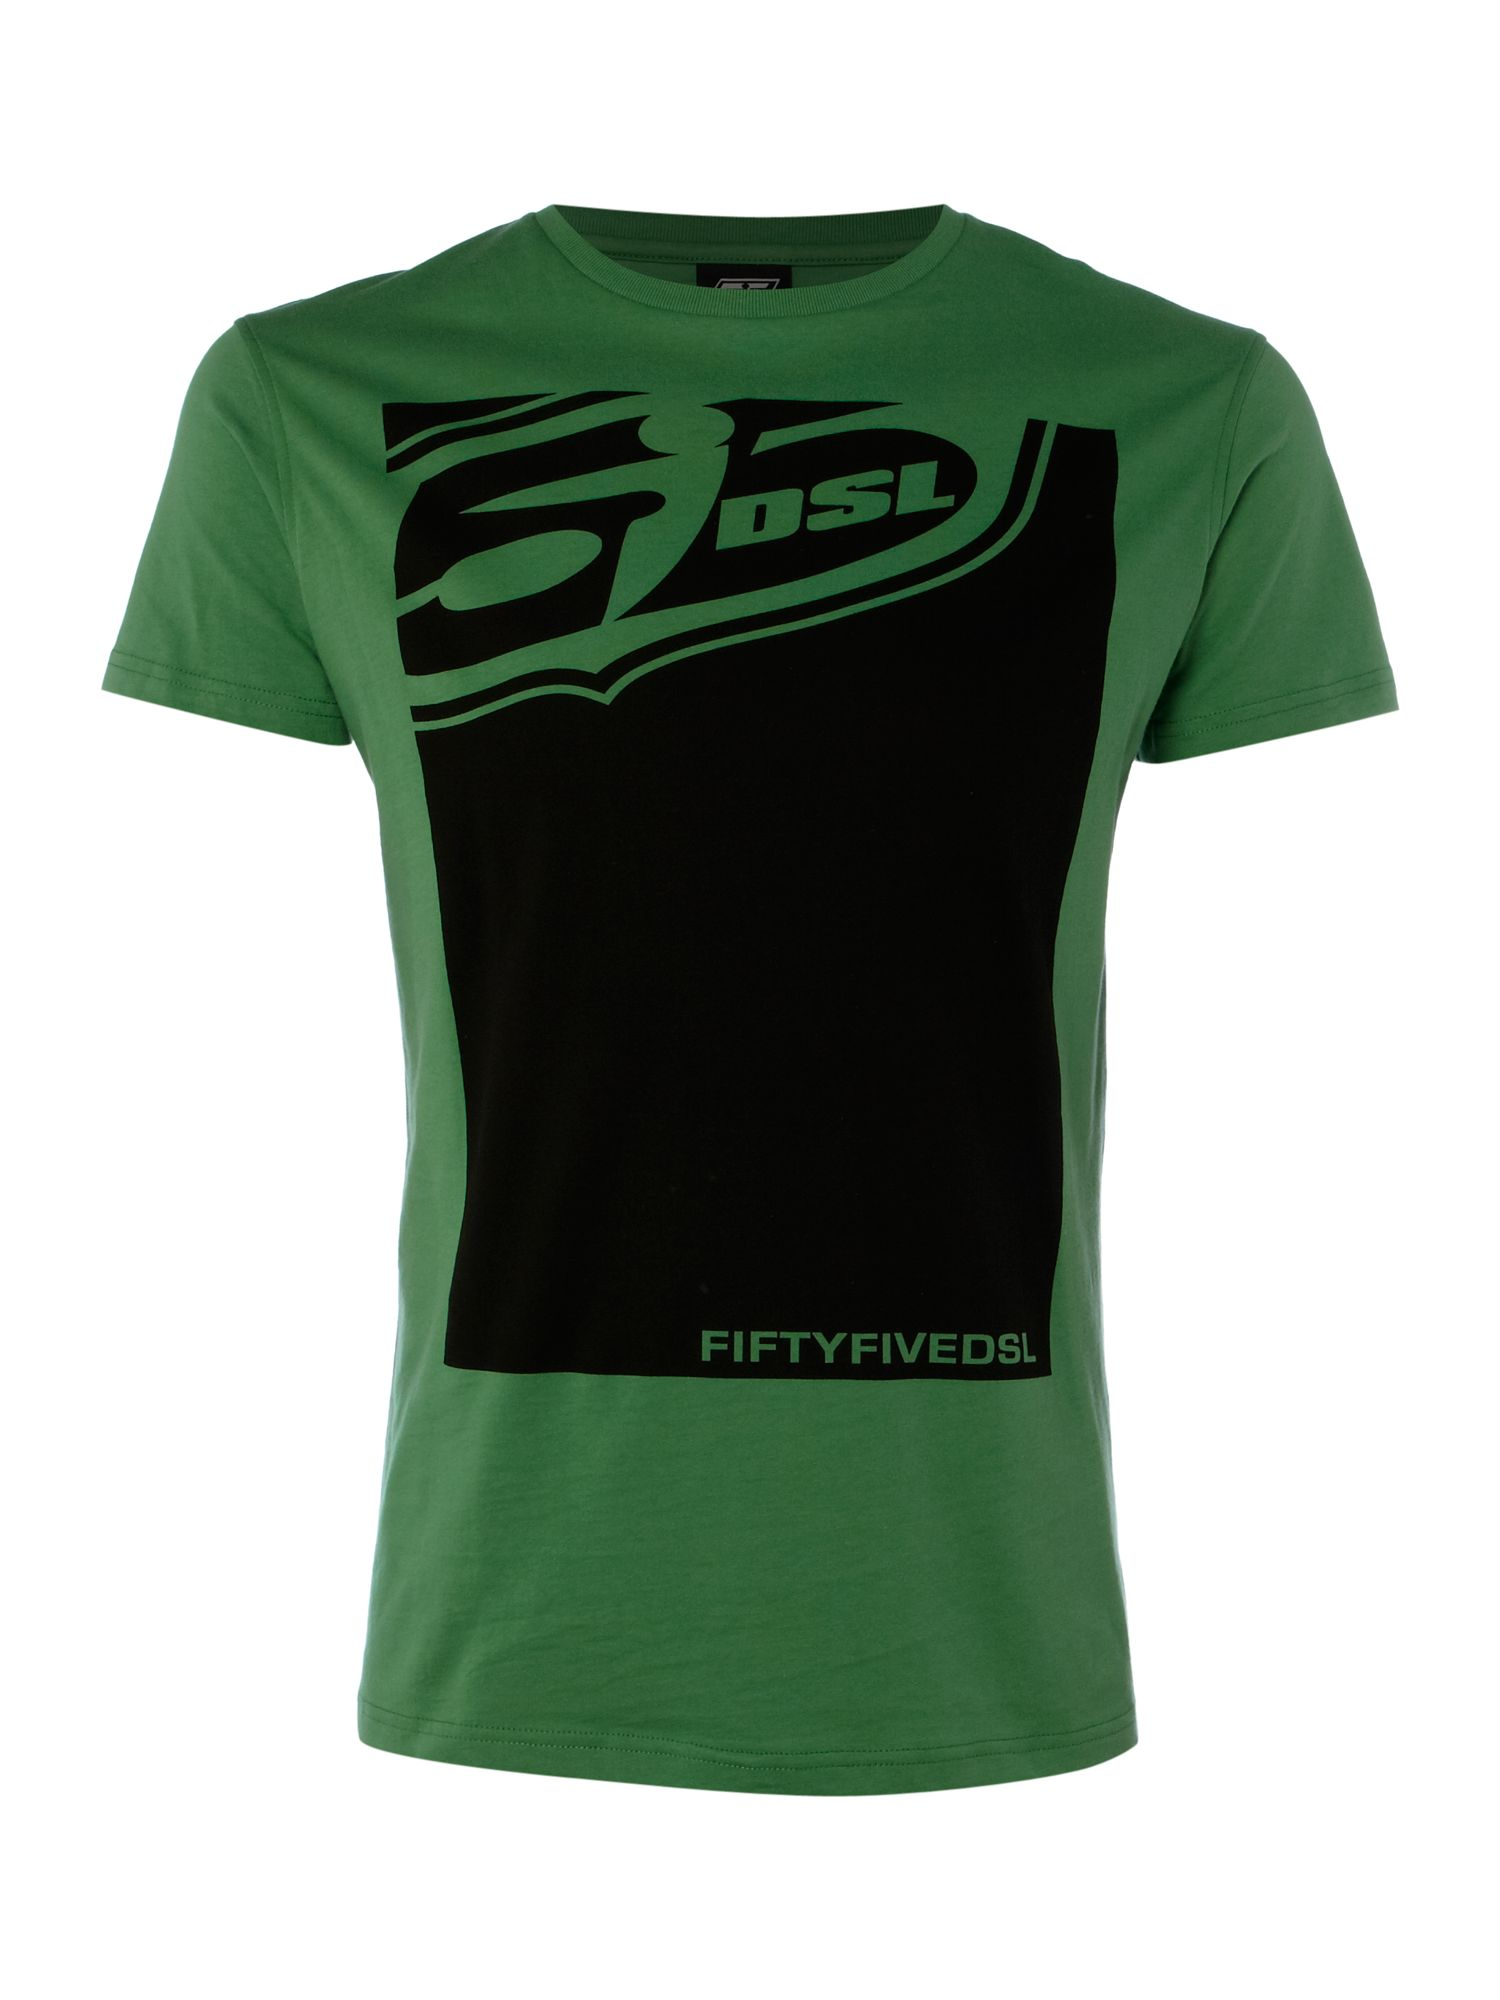 55 DSL Large logo T-shirt - Green S,S,S product image